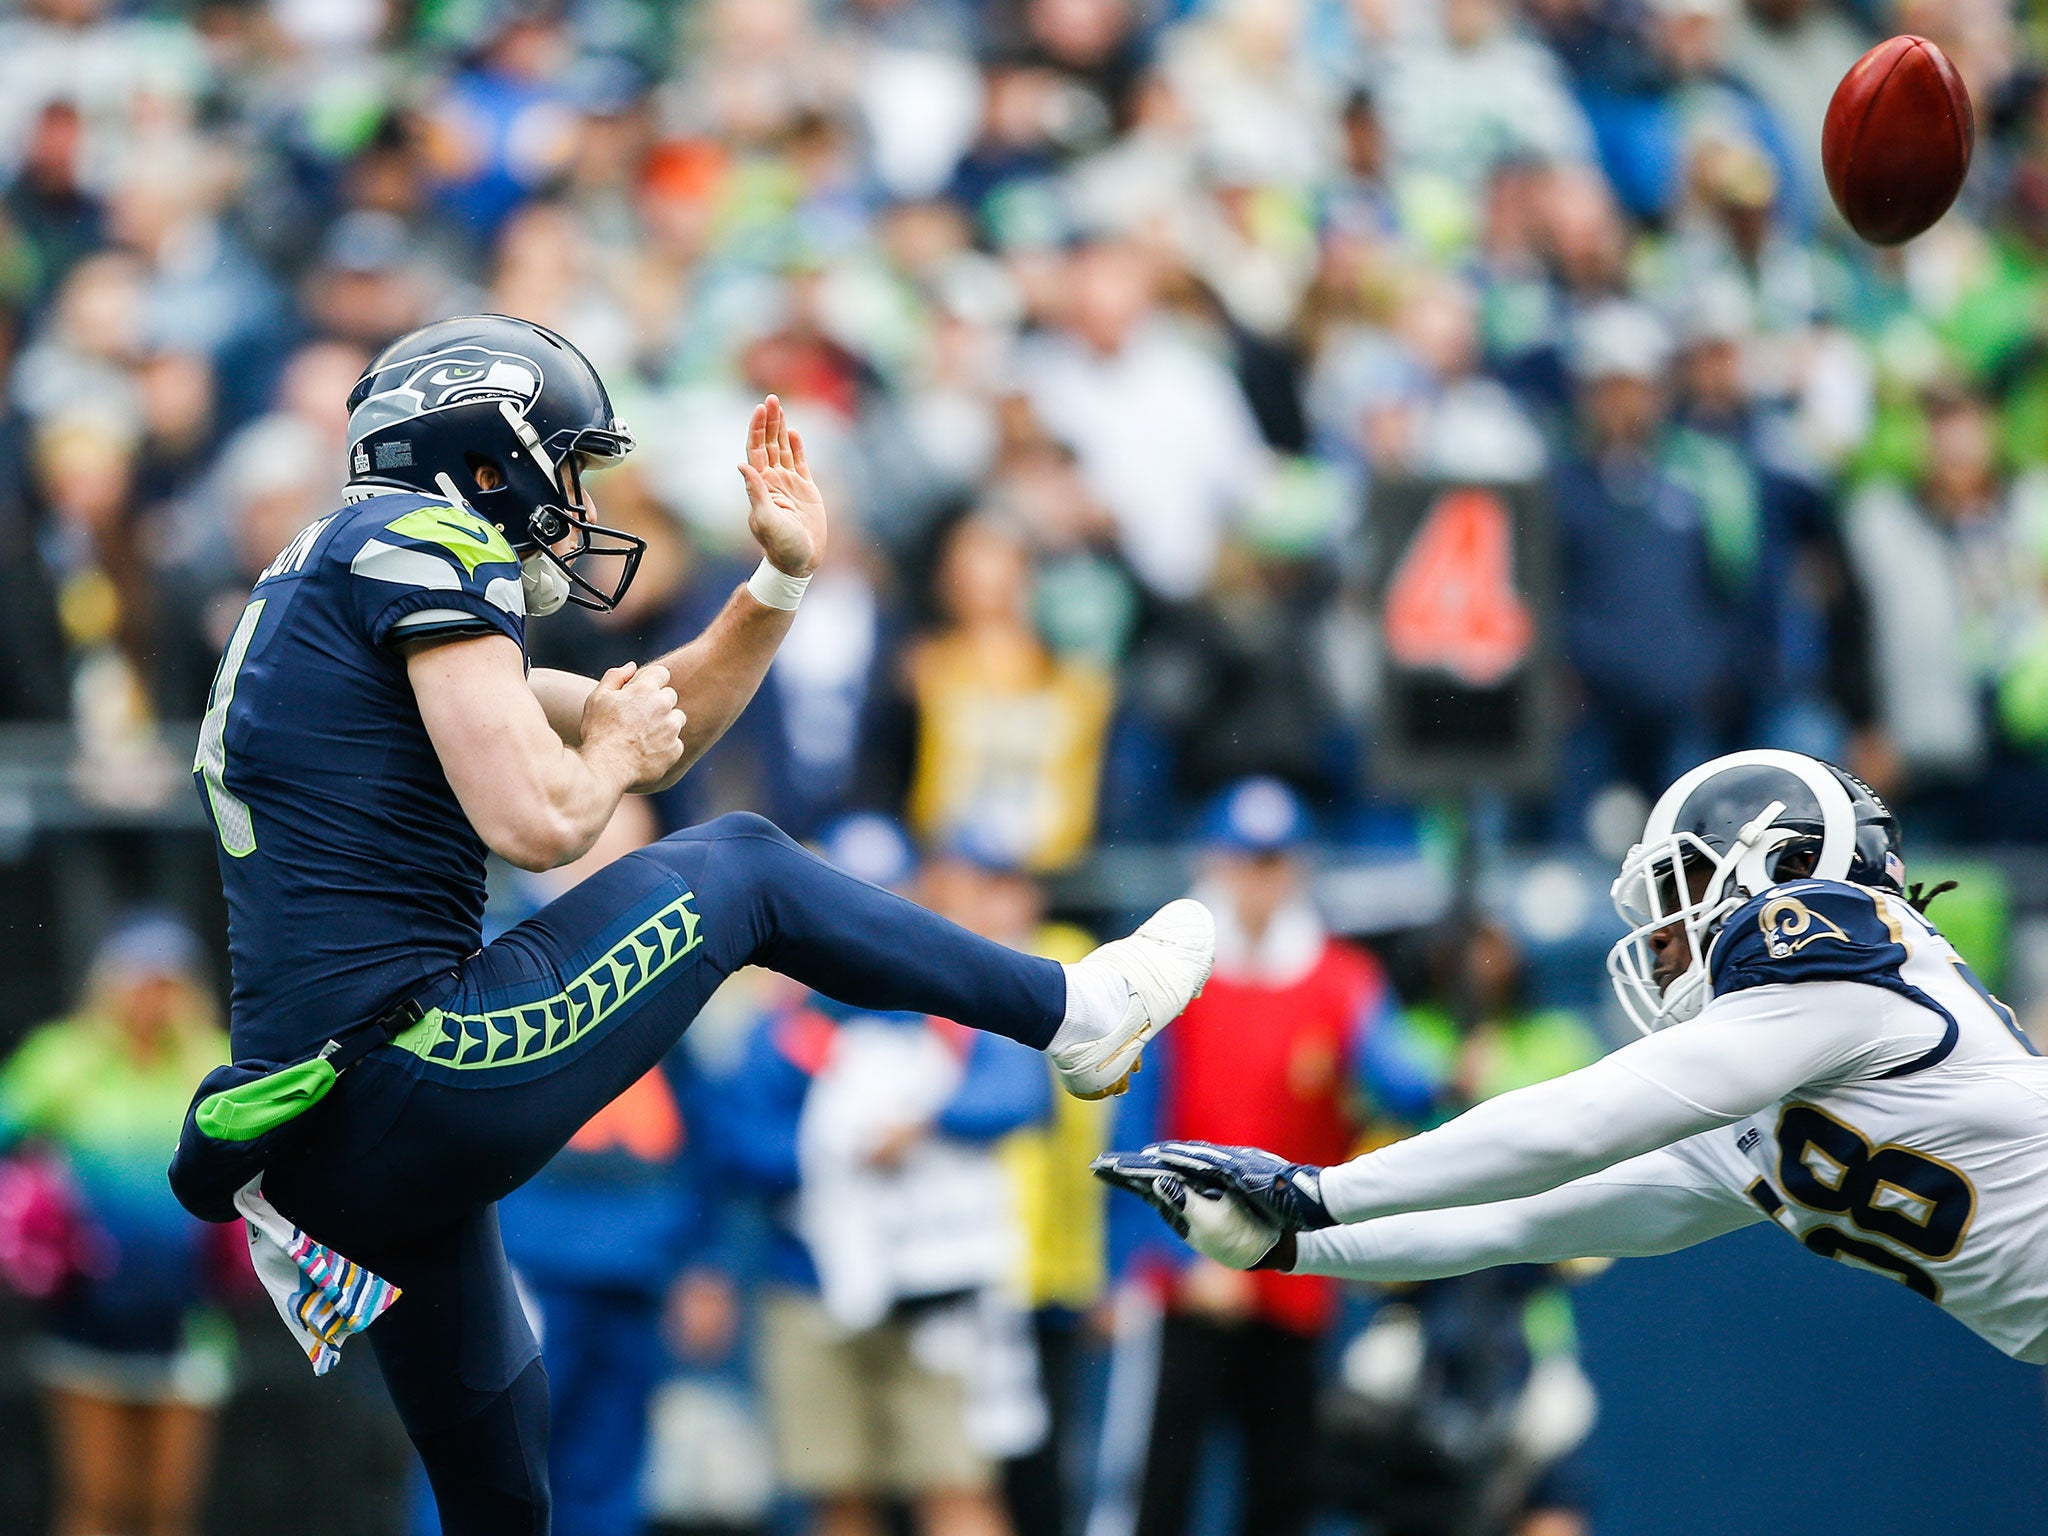 f3b0f82b23e The life of an NFL punter: Michael Dickson may make it look easy but danger  looms just around the corner